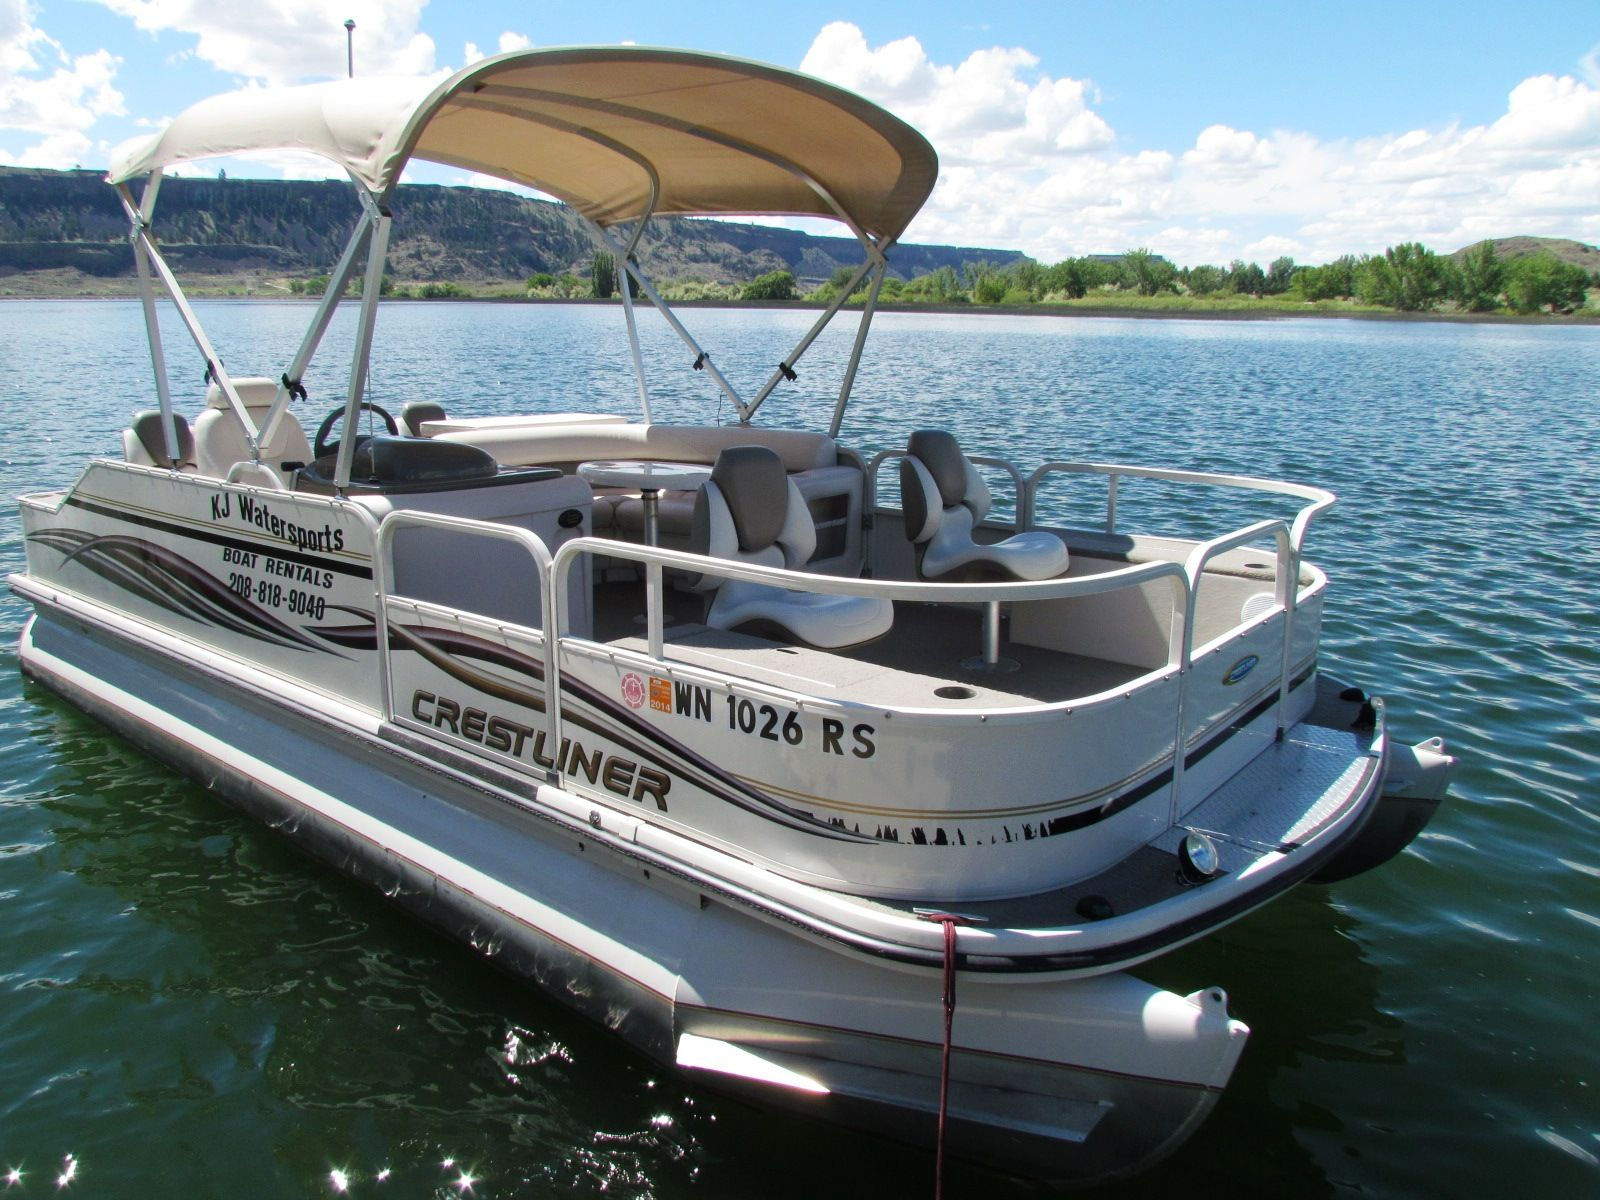 1000 Images About Cool Boats On Pinterest Auto Electrical Wiring Crestliner Pontoon Boat Diagram 12 Person